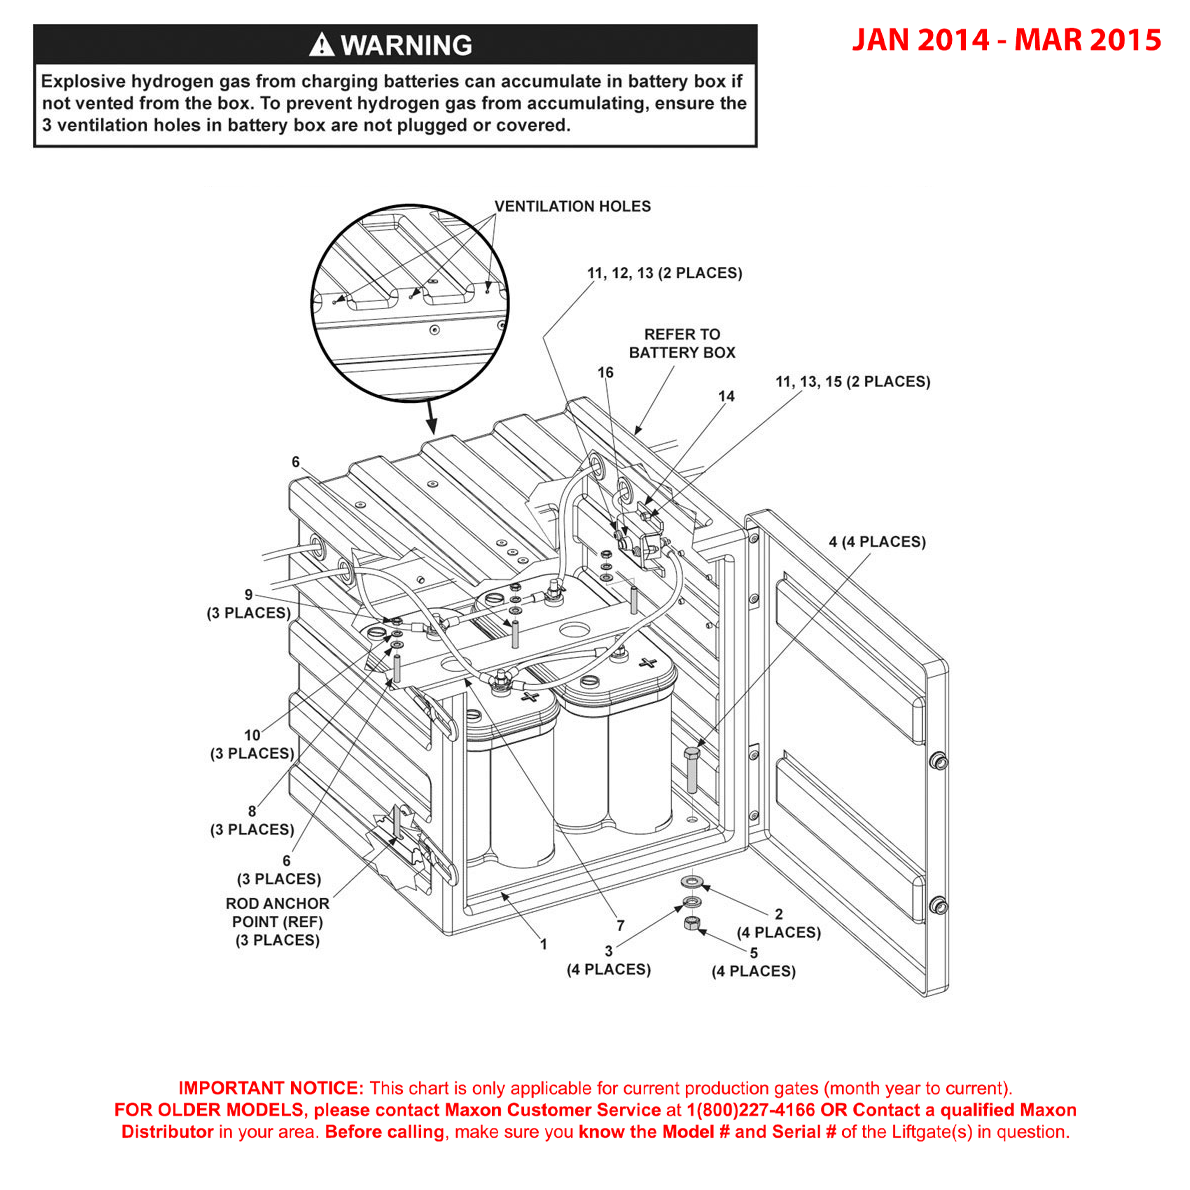 GPTWR (Jan 2014 - Mar 2015) Optional Battery Box Assembly Diagram